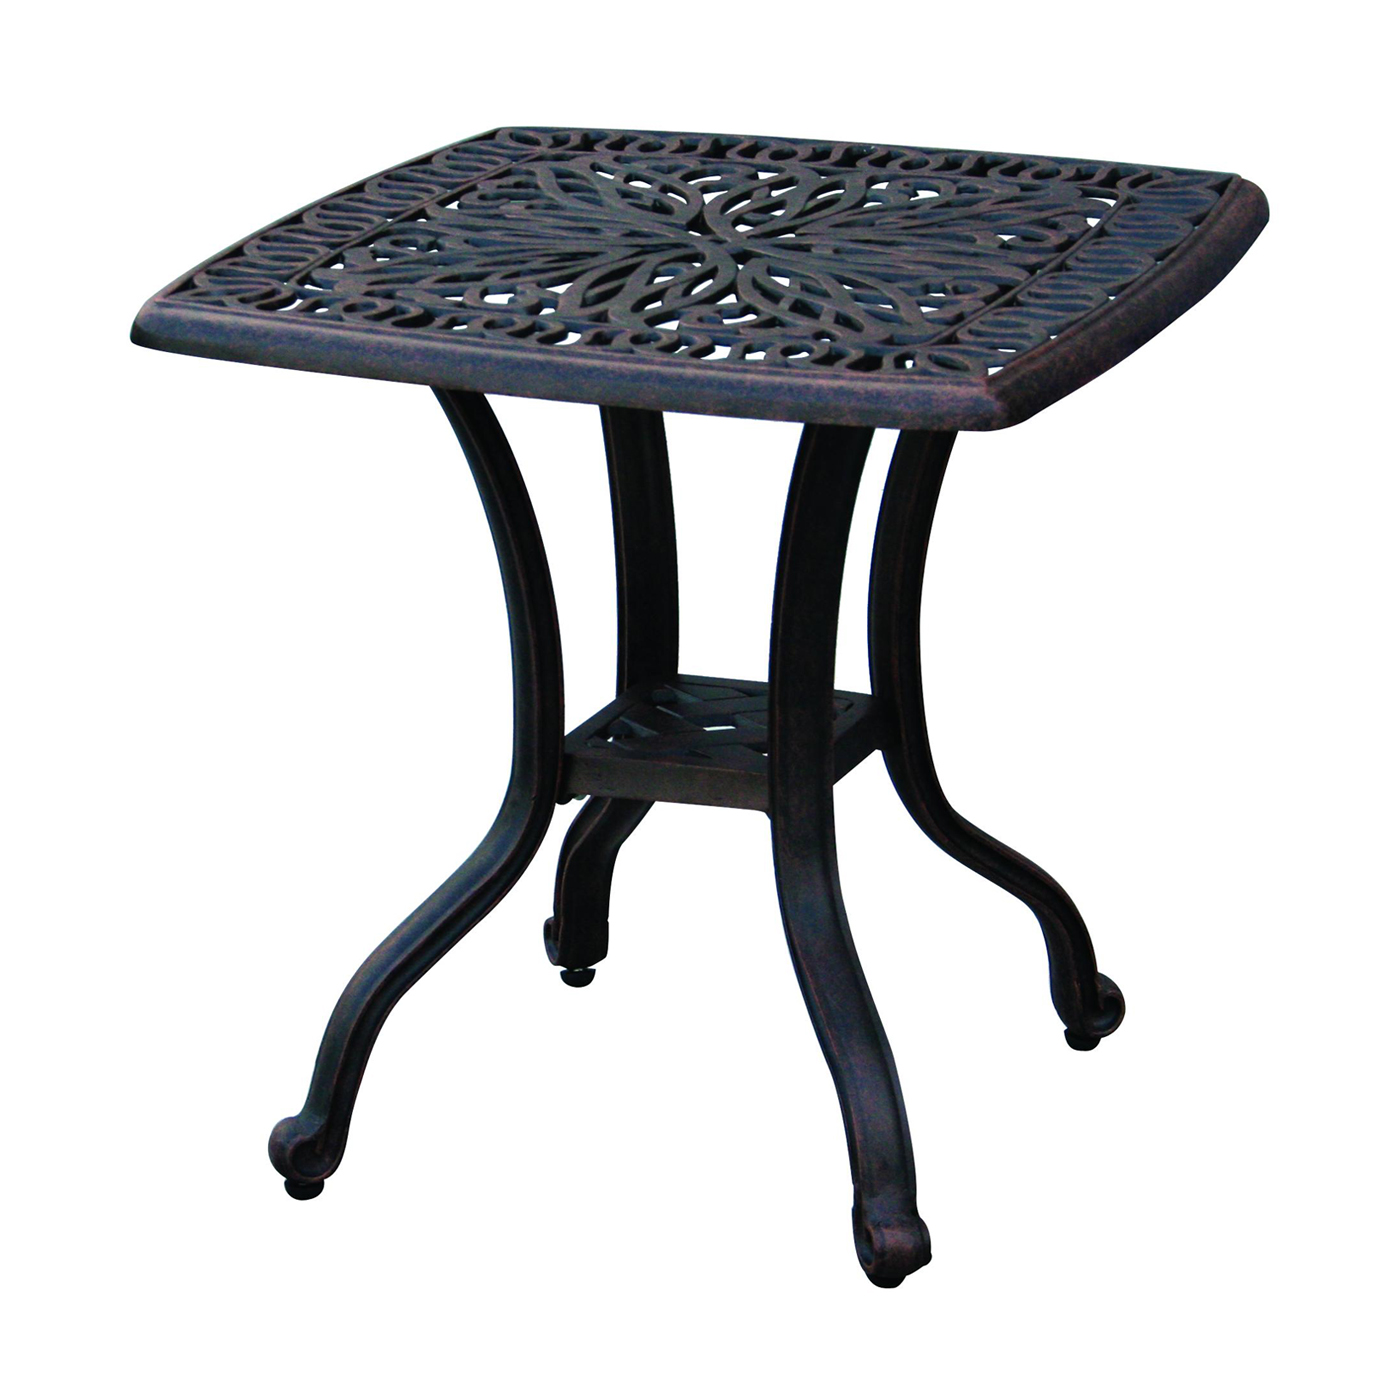 darlee elisabeth square end table atg modern accent target outdoor tables coffee dimensions wooden garden storage box night lamps with baskets metal door threshold strips teak